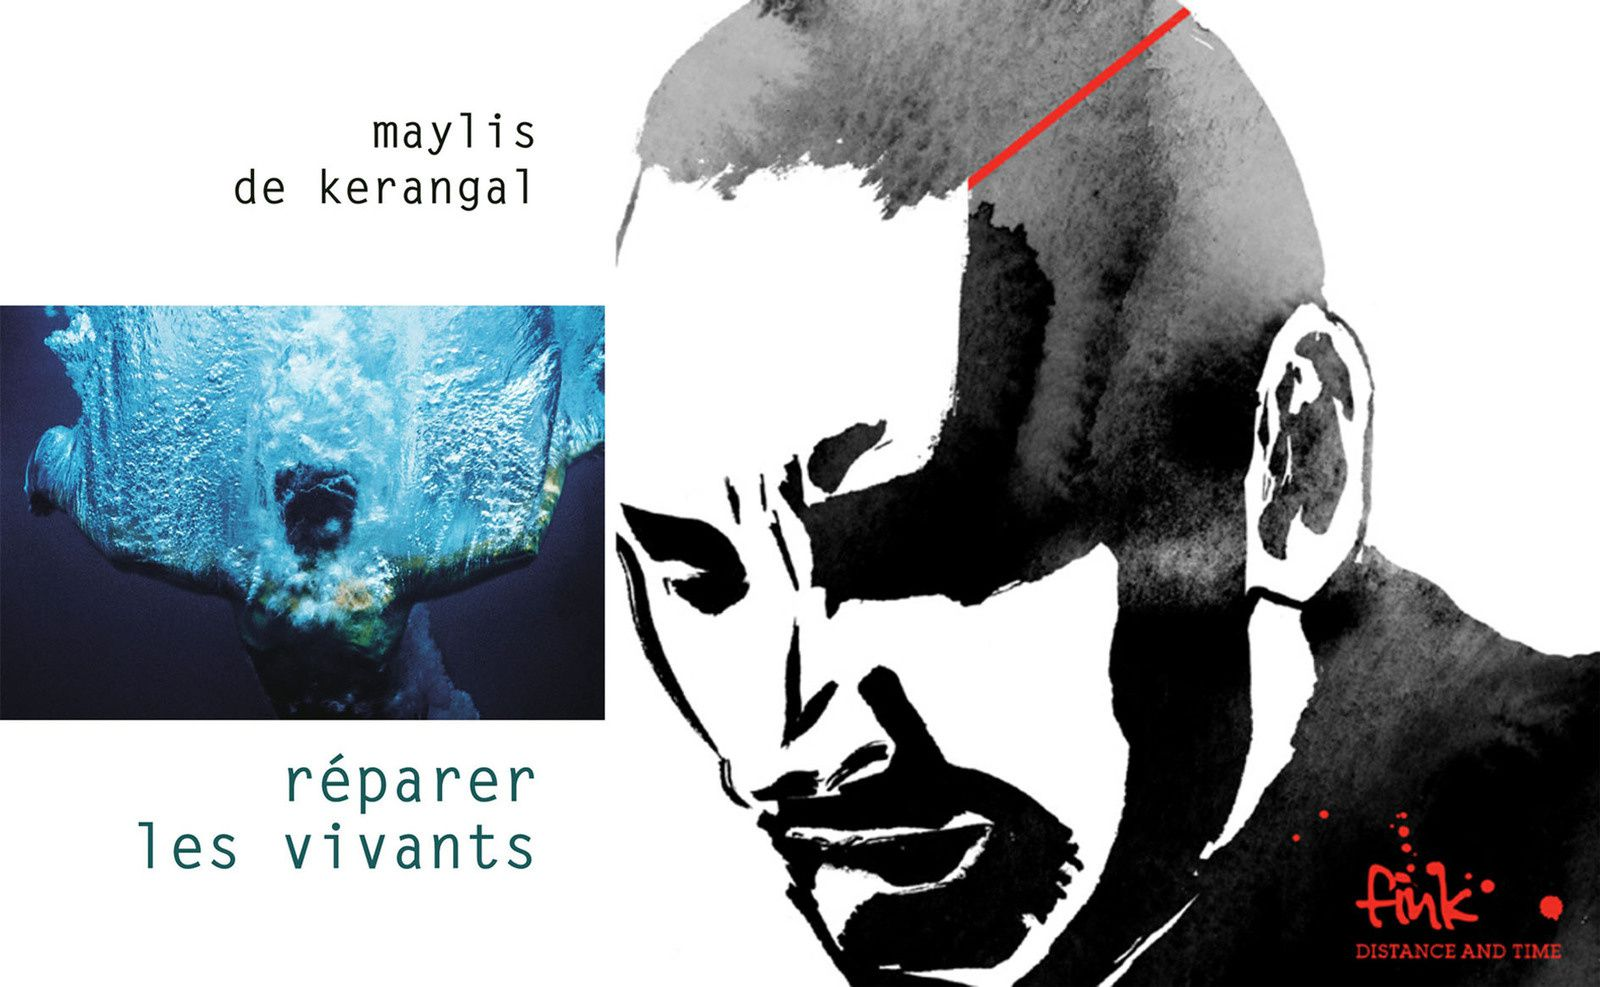 &quot&#x3B;Réparer les vivants&quot&#x3B; de Maylis de Kerangal / Fink &quot&#x3B;Distance and time&quot&#x3B;